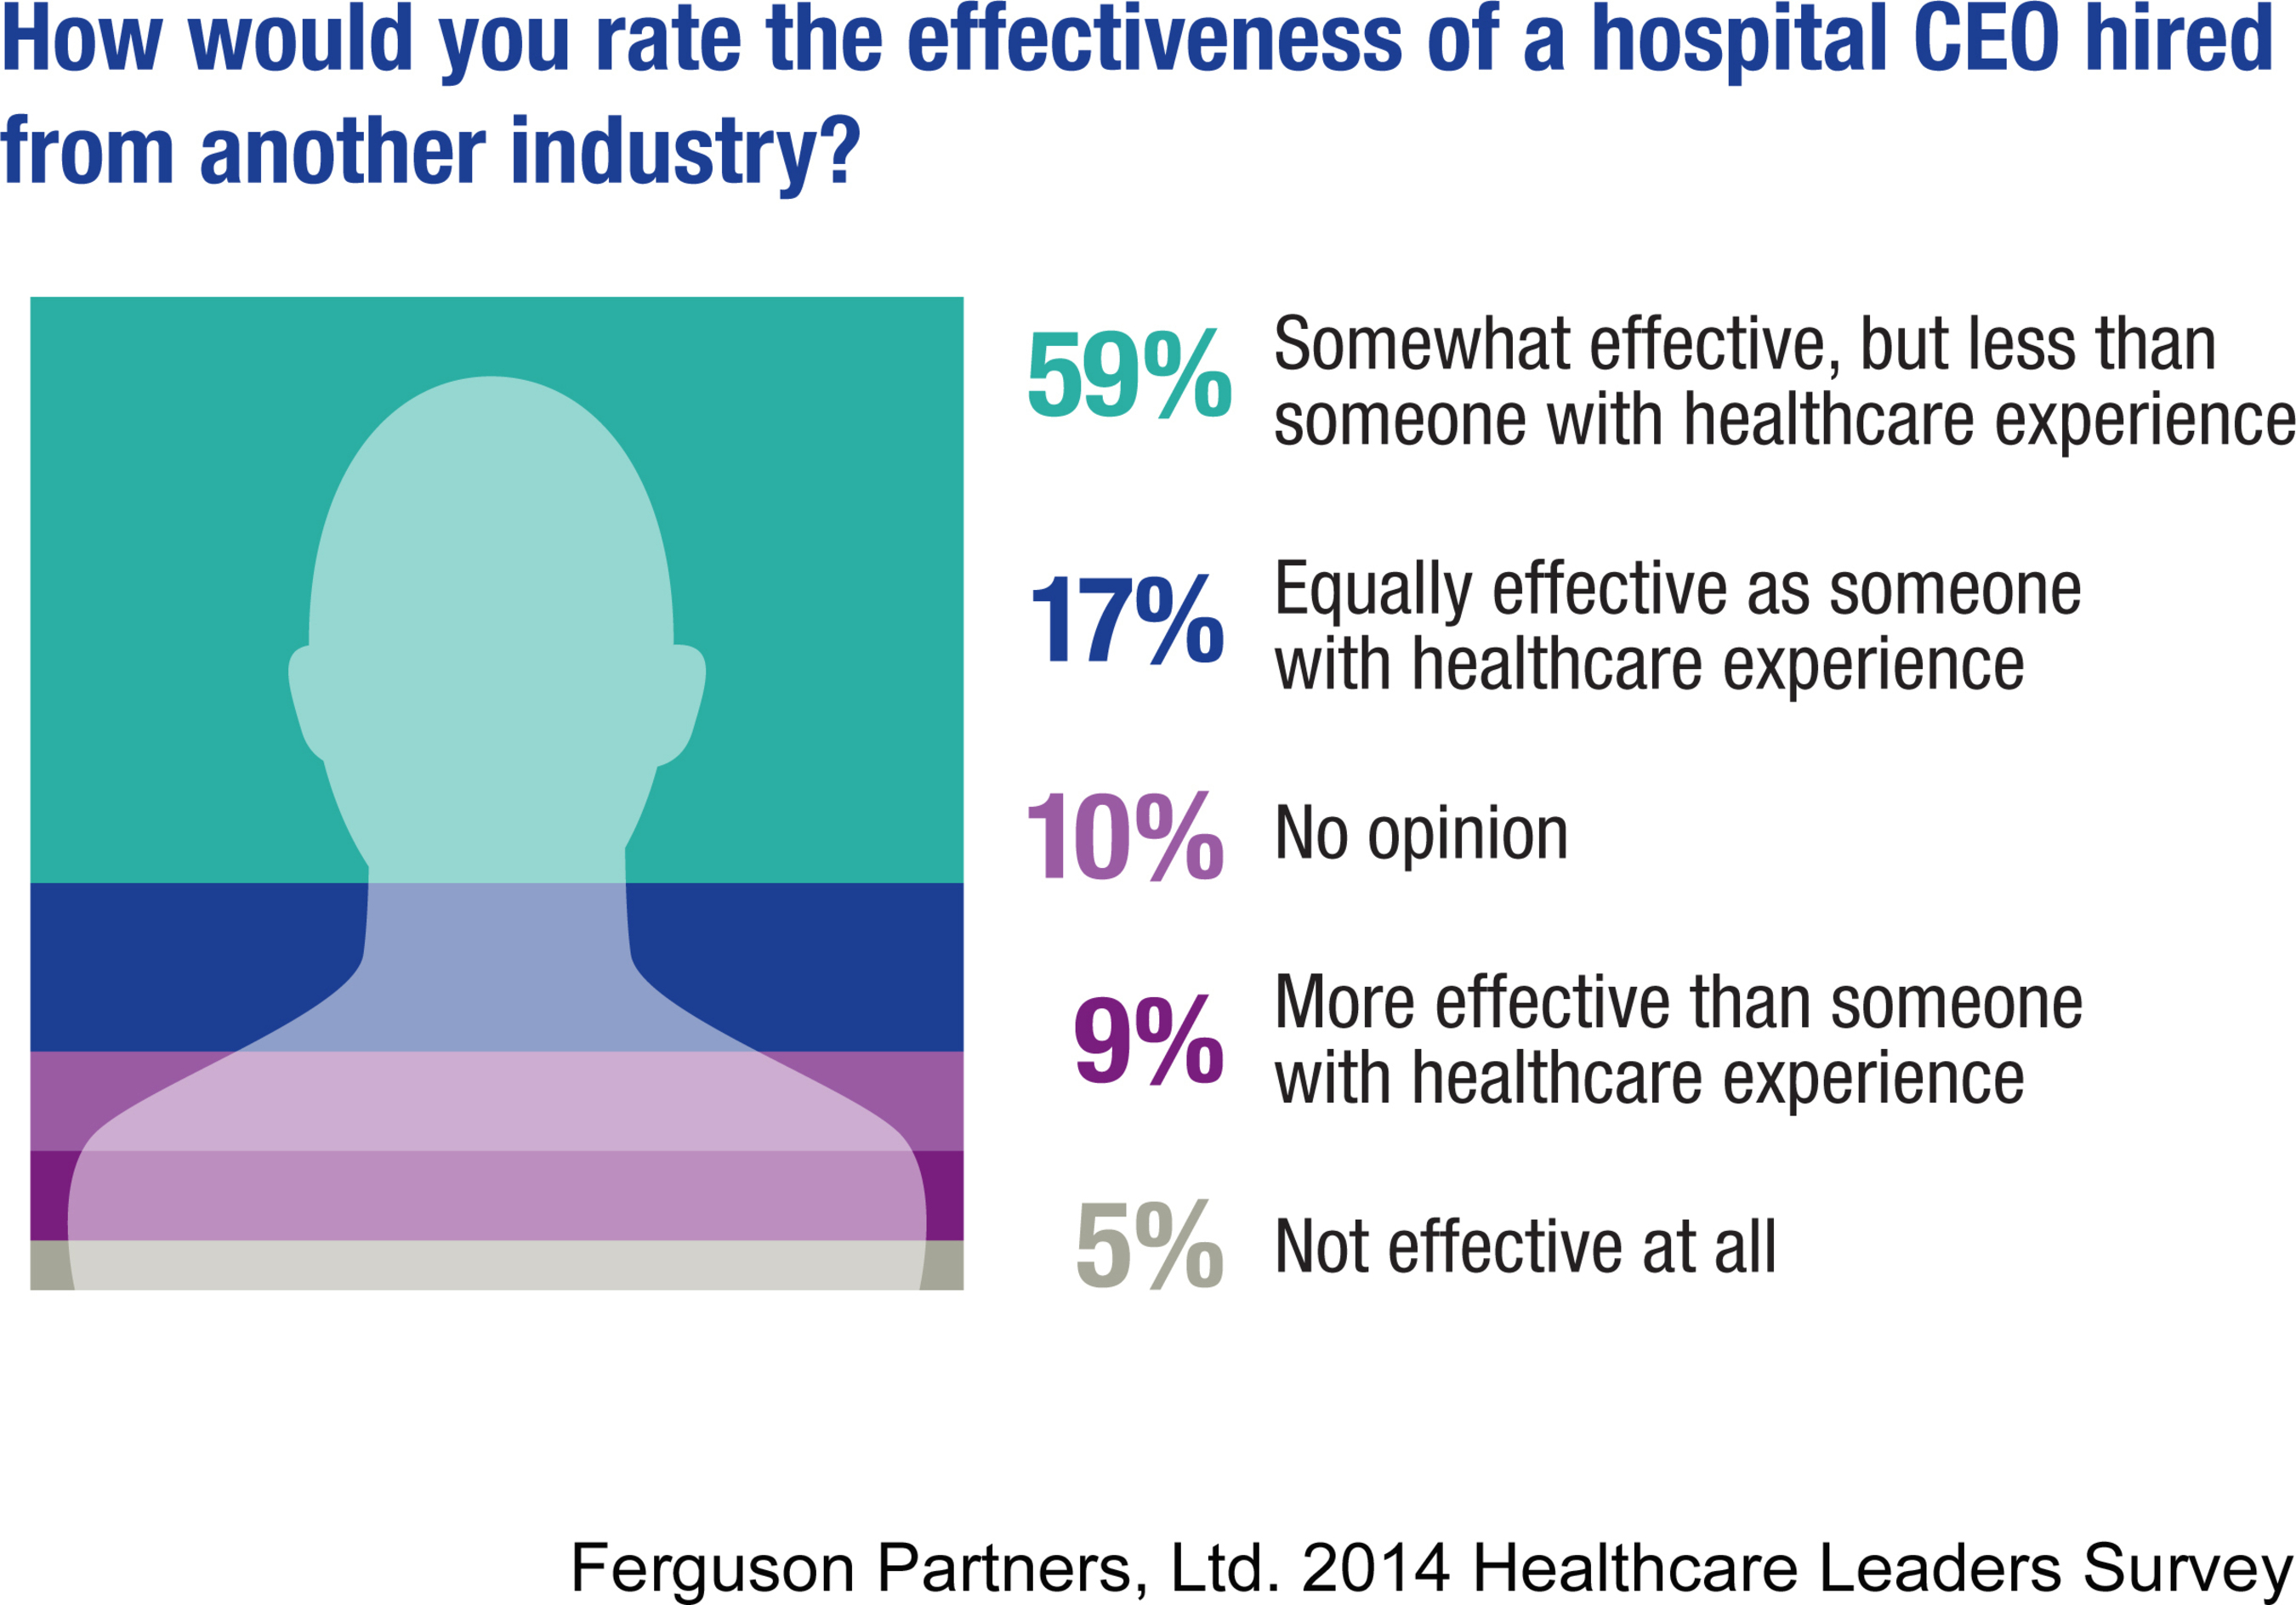 59% would rate a healthcare CEO from an outside industry less effective than someone with healthcare experience  ...